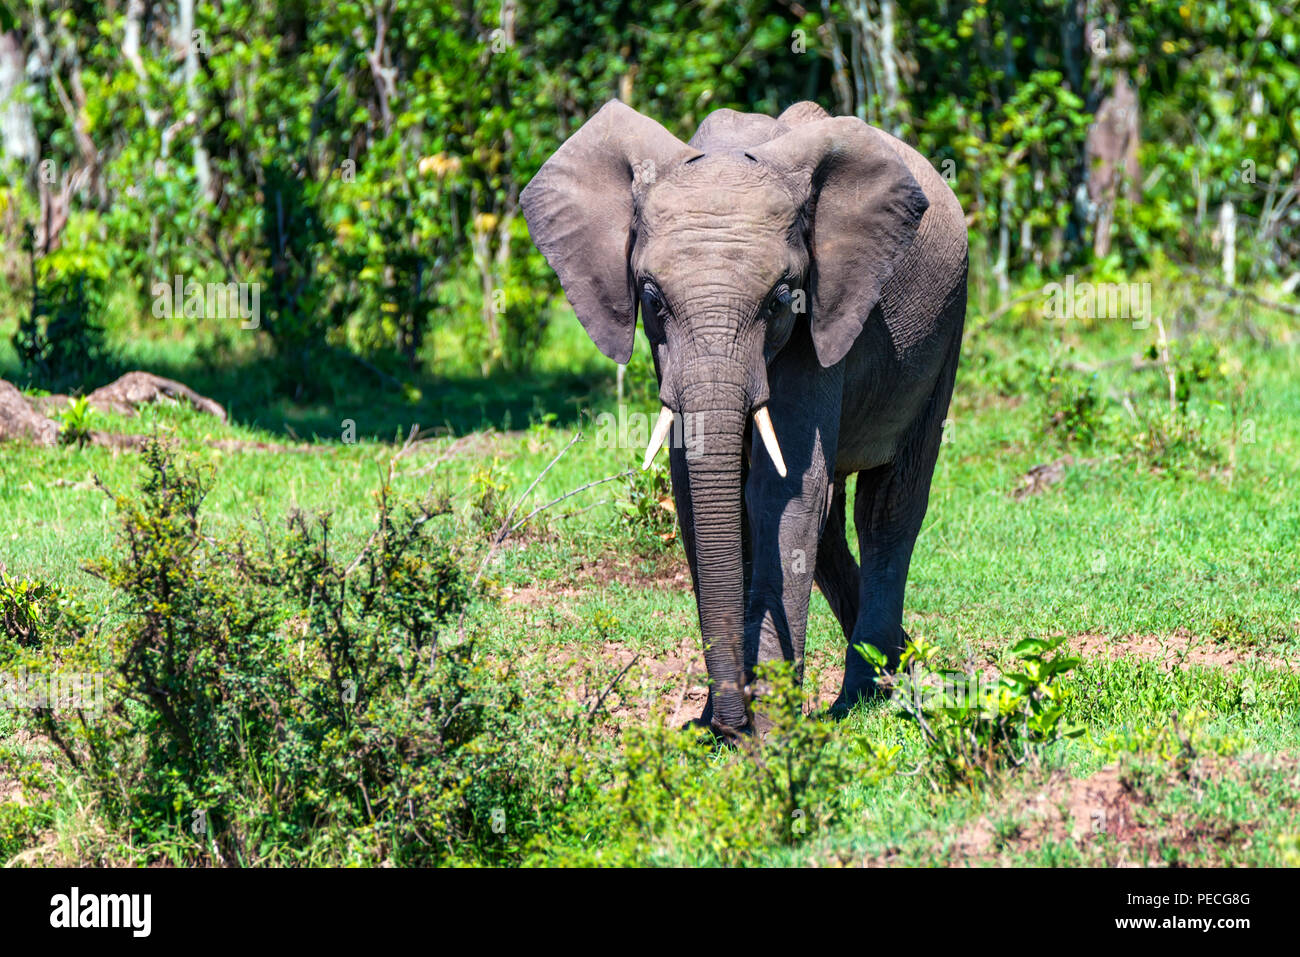 African elephant or Loxodonta cyclotis in nature - Stock Image